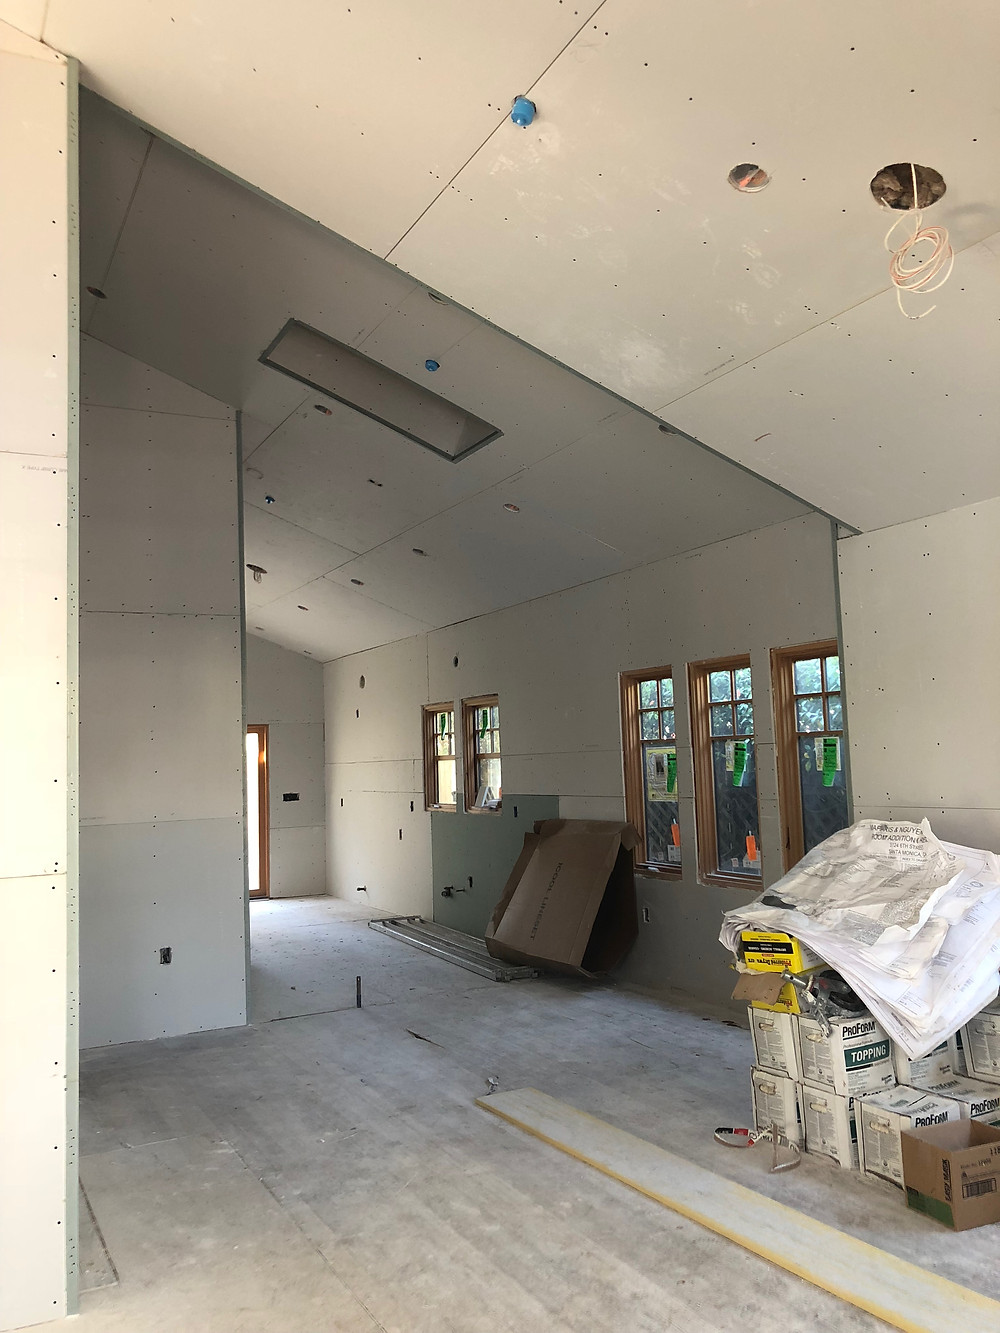 Photo of drywall at a site walk